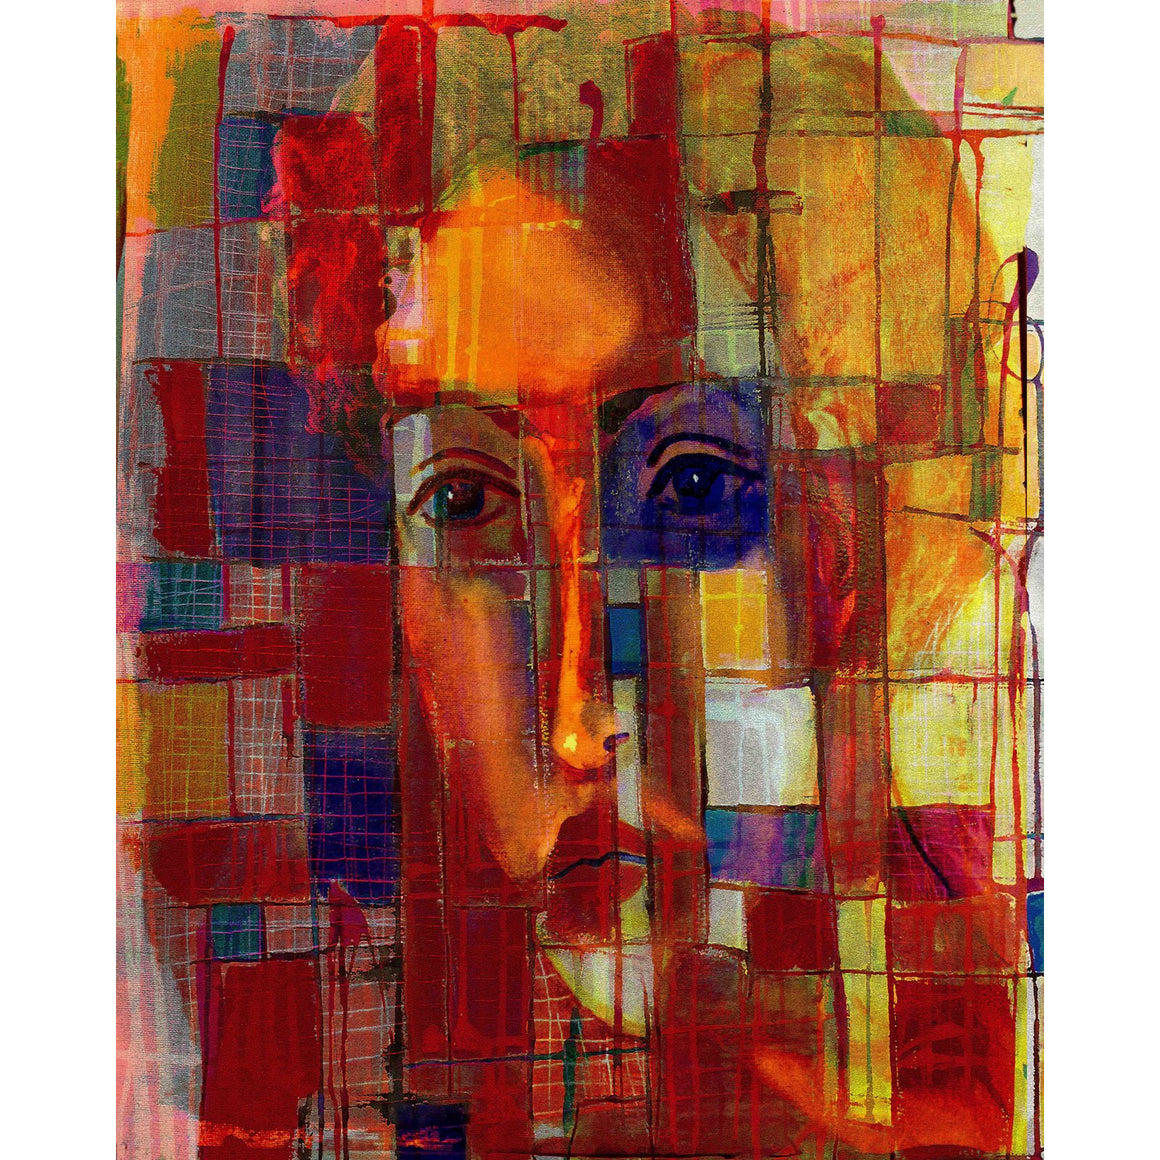 "'Face 7' Digital Collage Limited Edition Fine Art Painting 40"" x 30"""